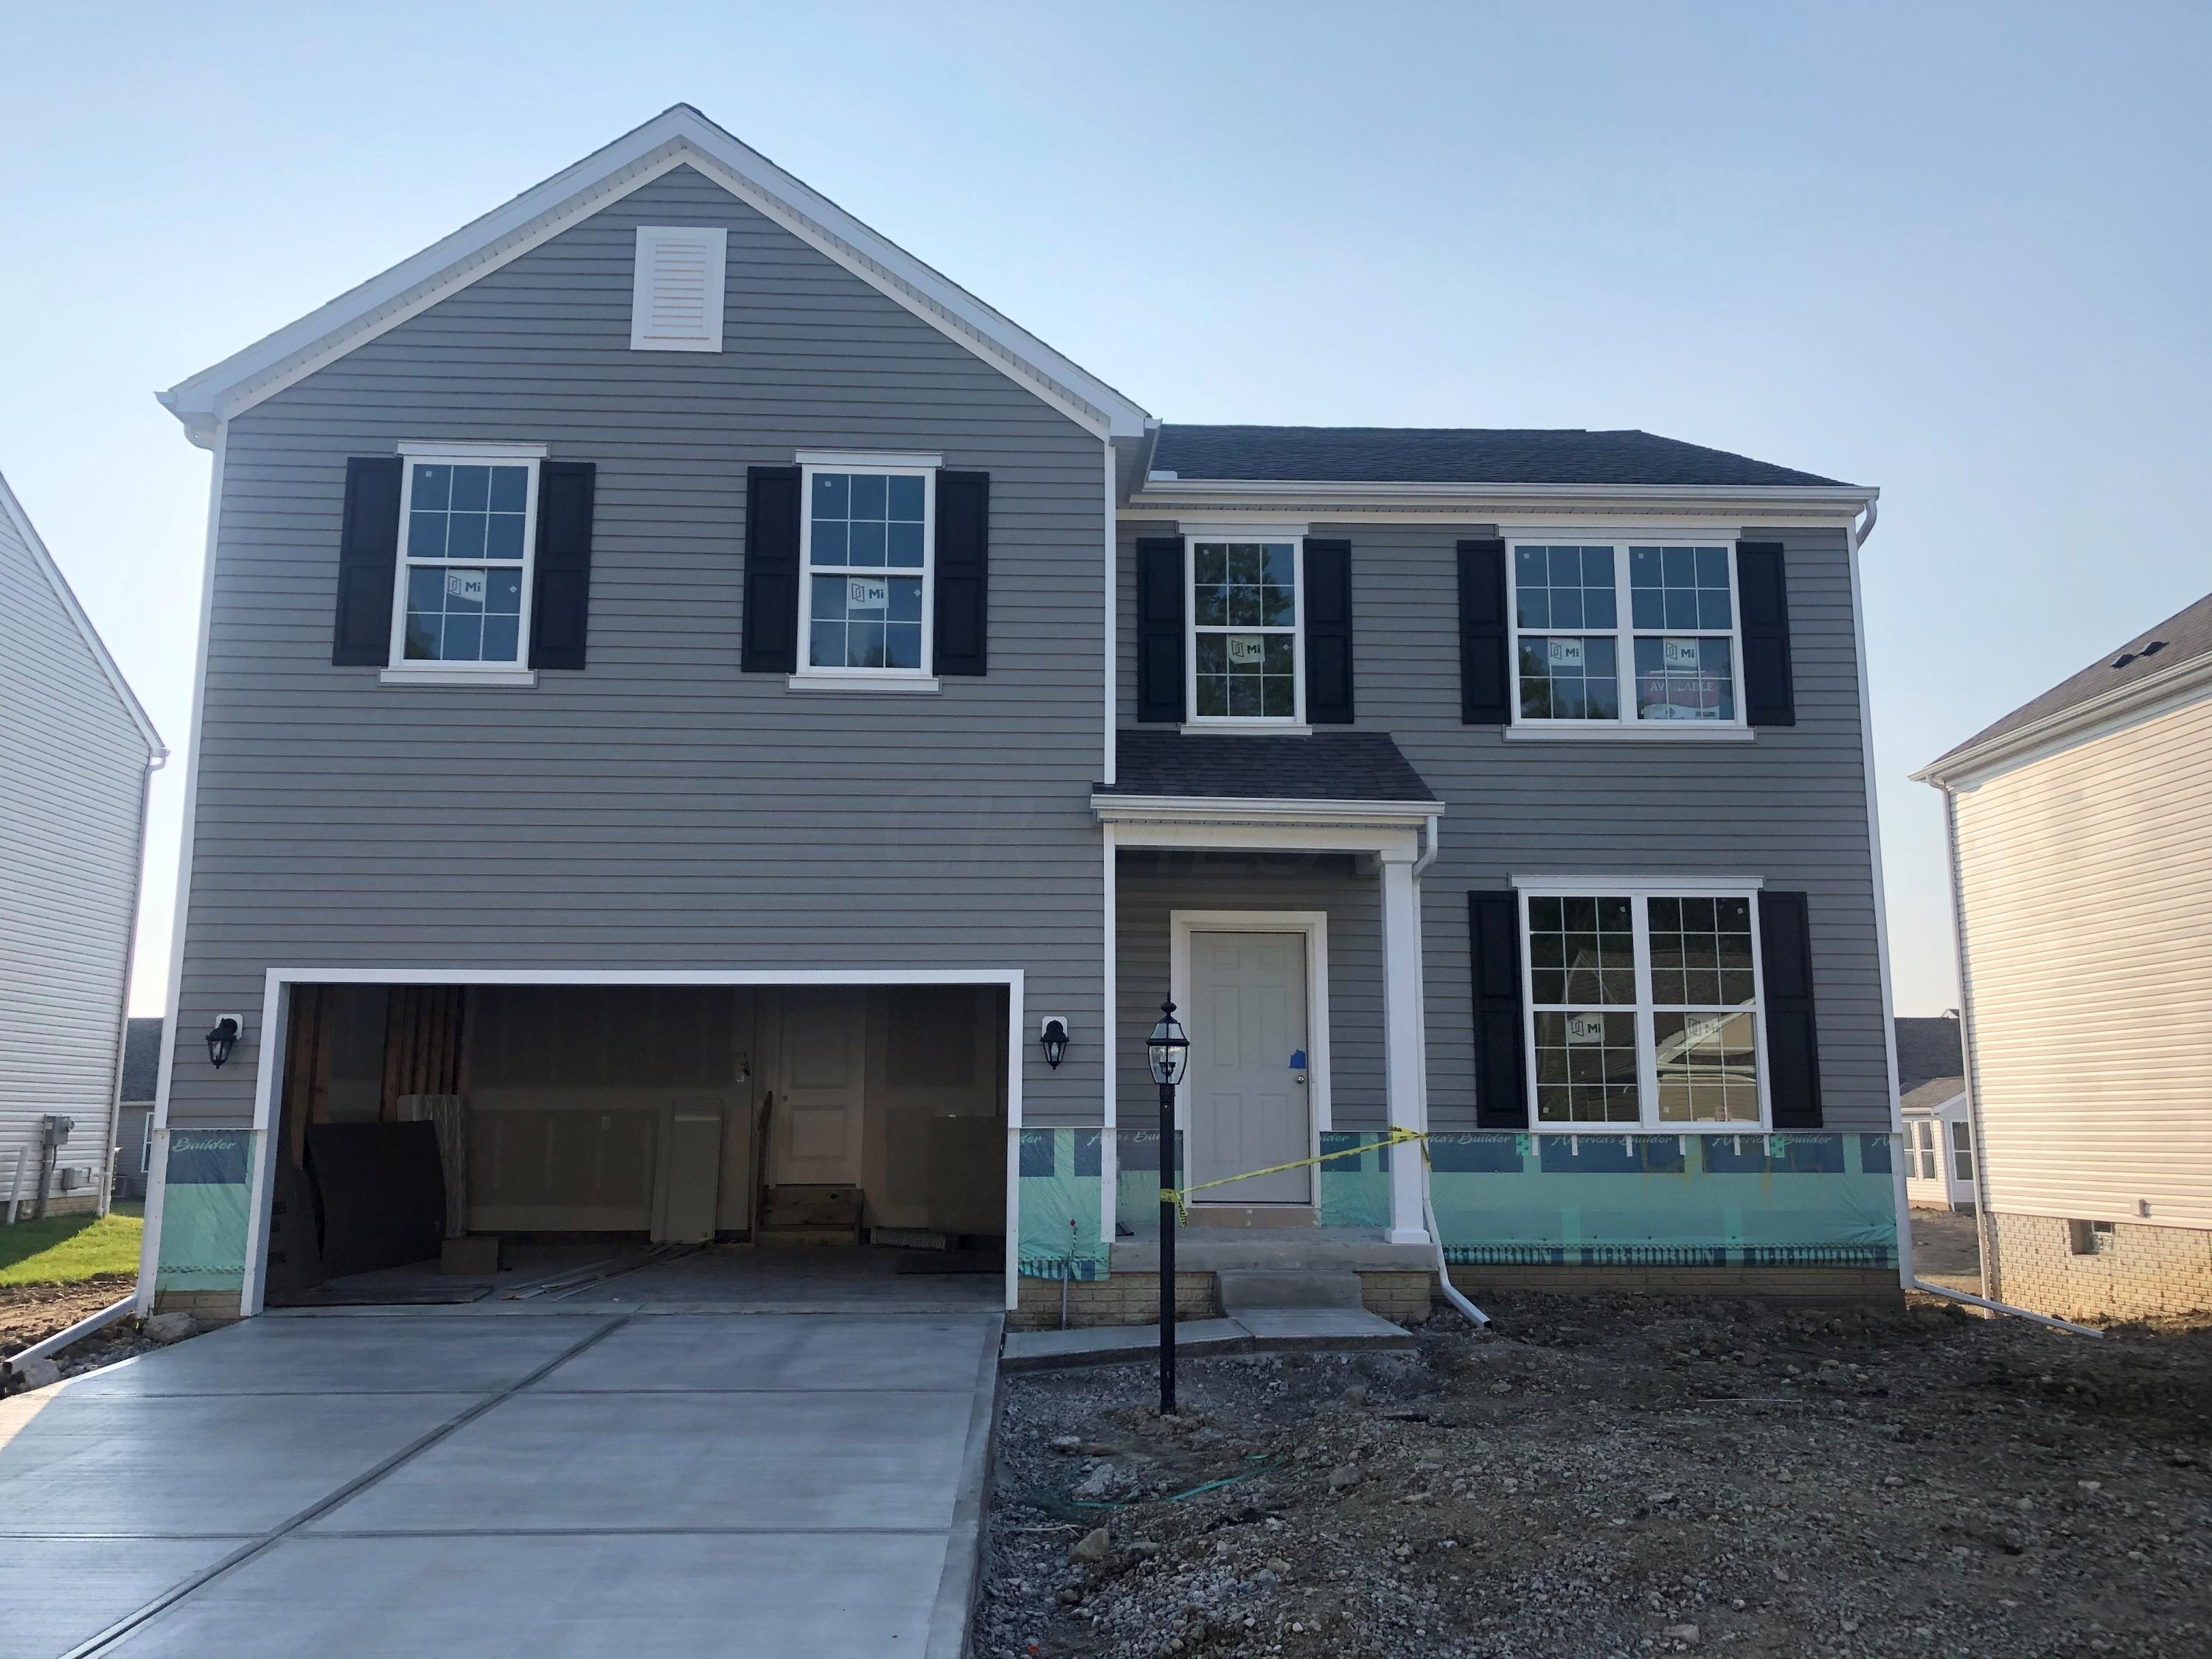 154 Old Bay Drive, Pataskala, Ohio 43062, 4 Bedrooms Bedrooms, ,3 BathroomsBathrooms,Residential,For Sale,Old Bay,220017579